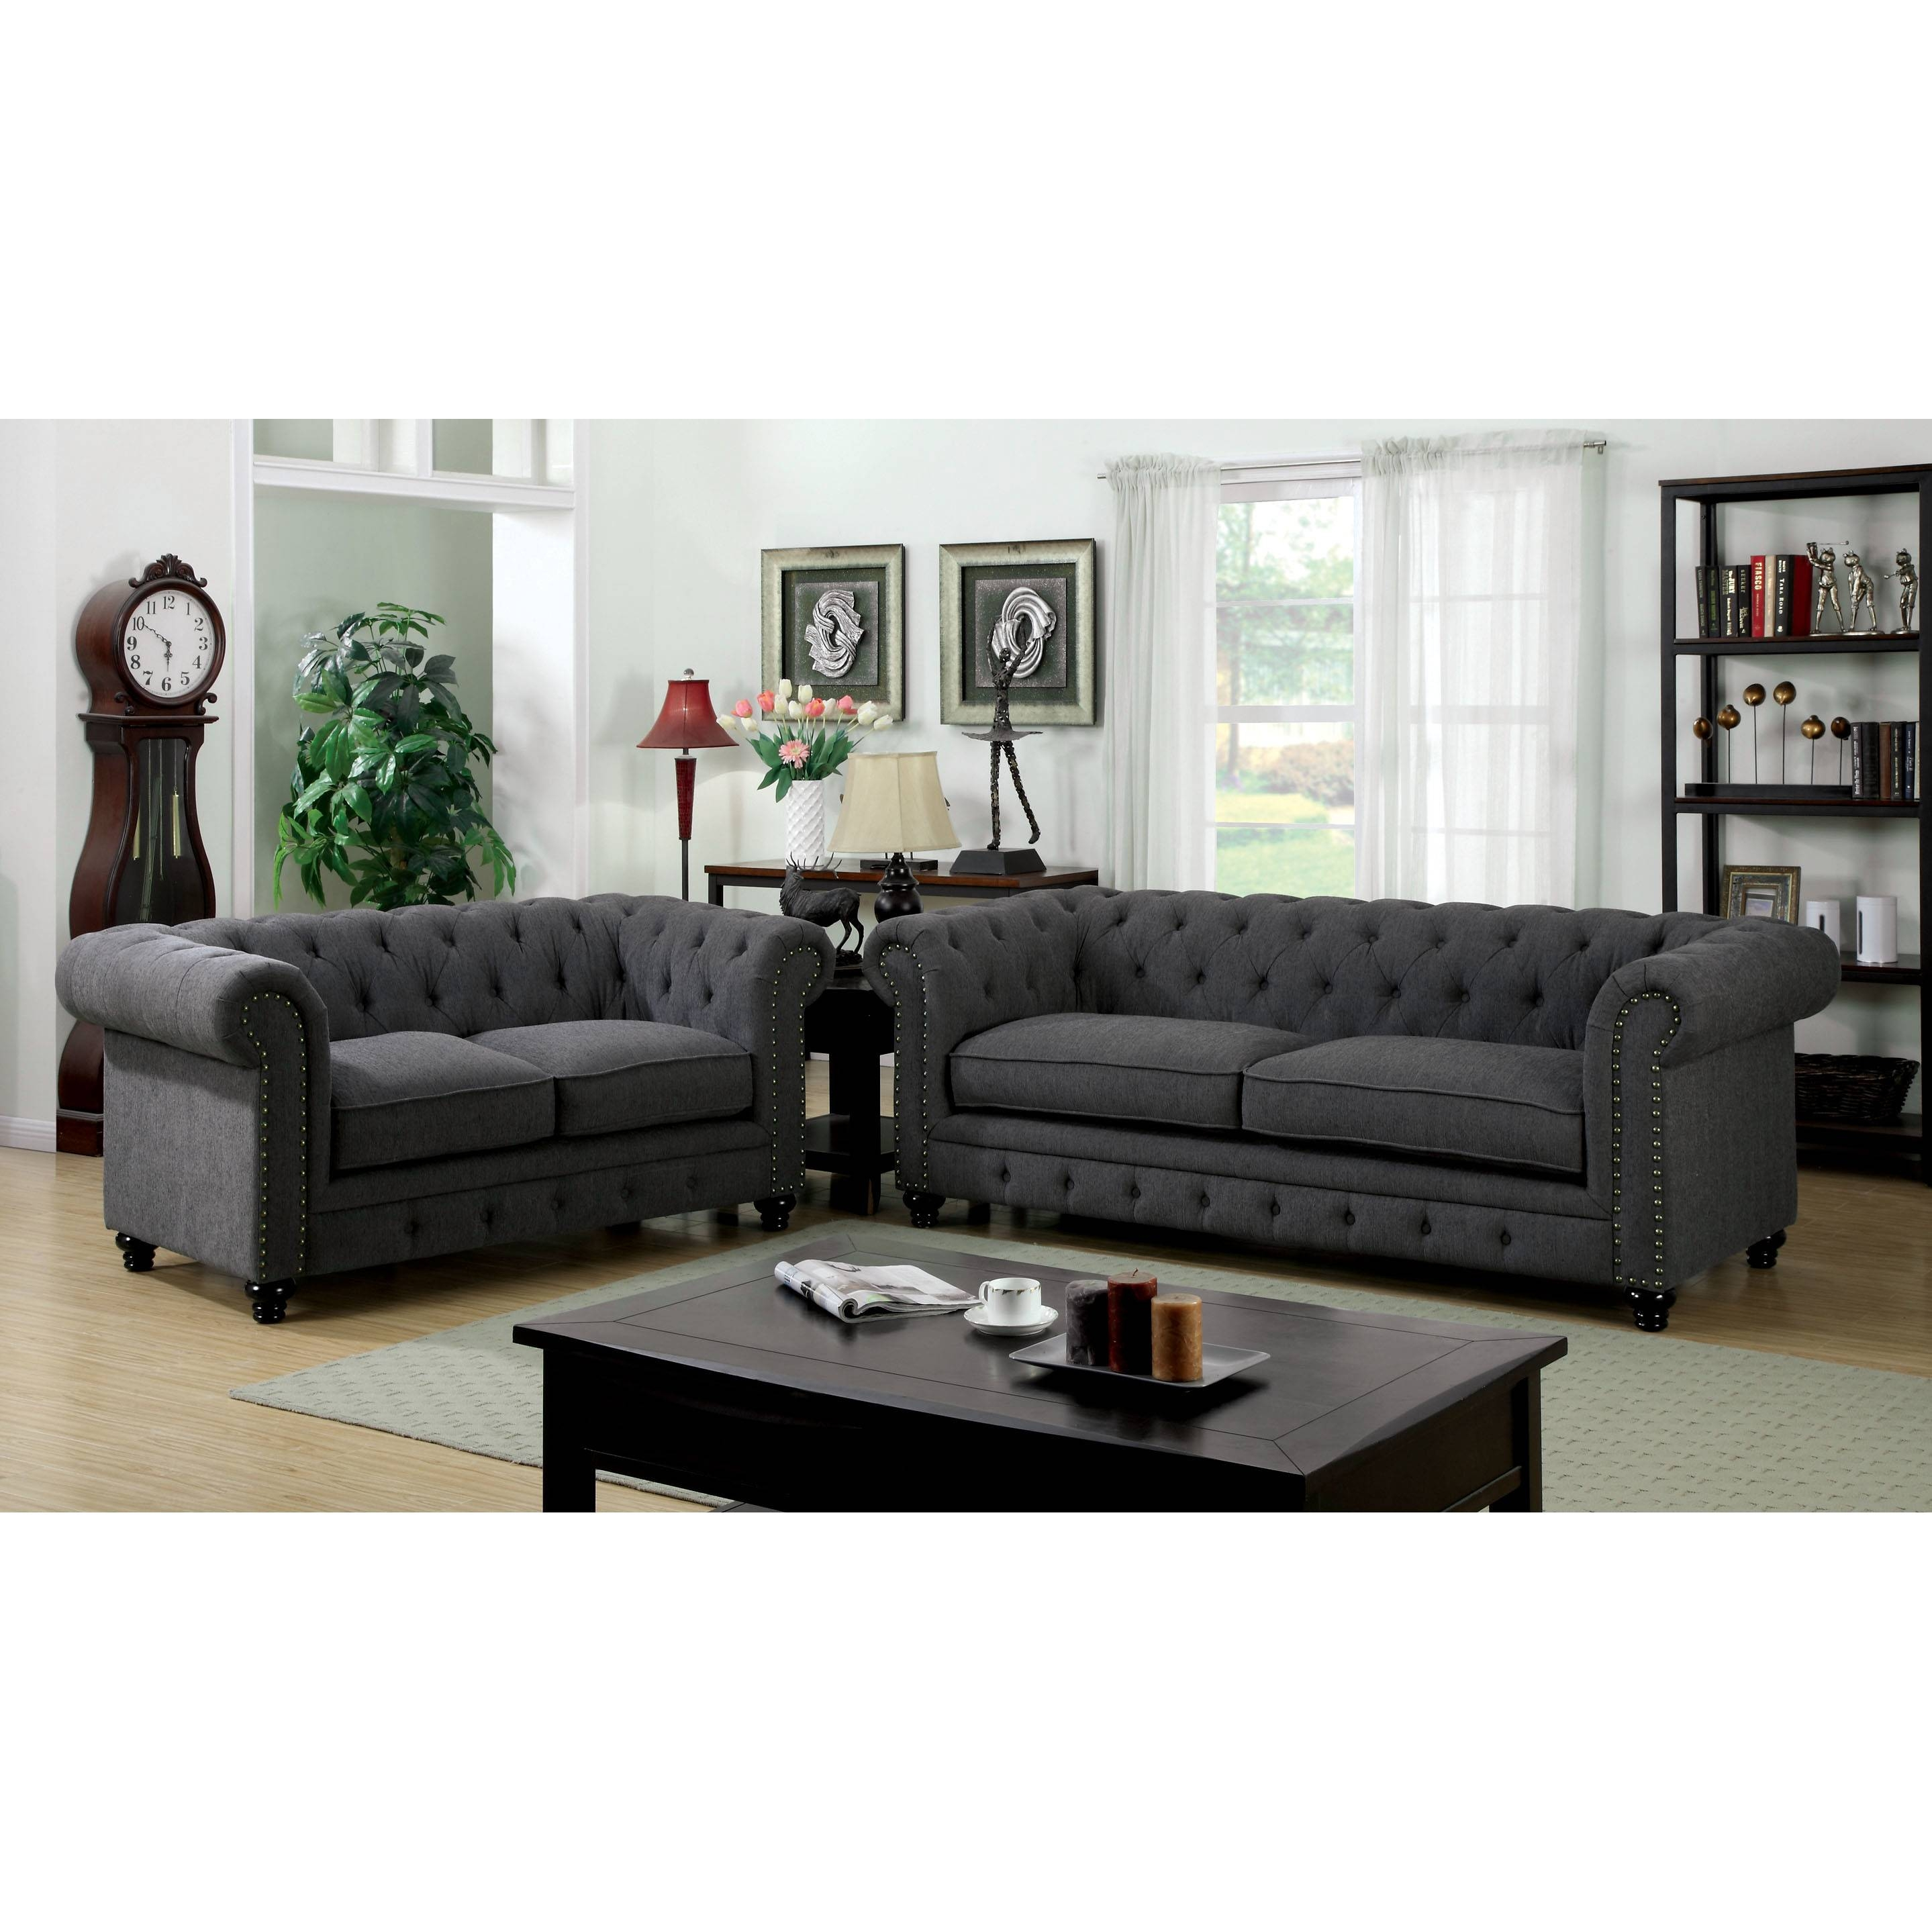 Top 15 Of Affordable Tufted Sofas ~ Cheap Tufted Leather Sofa